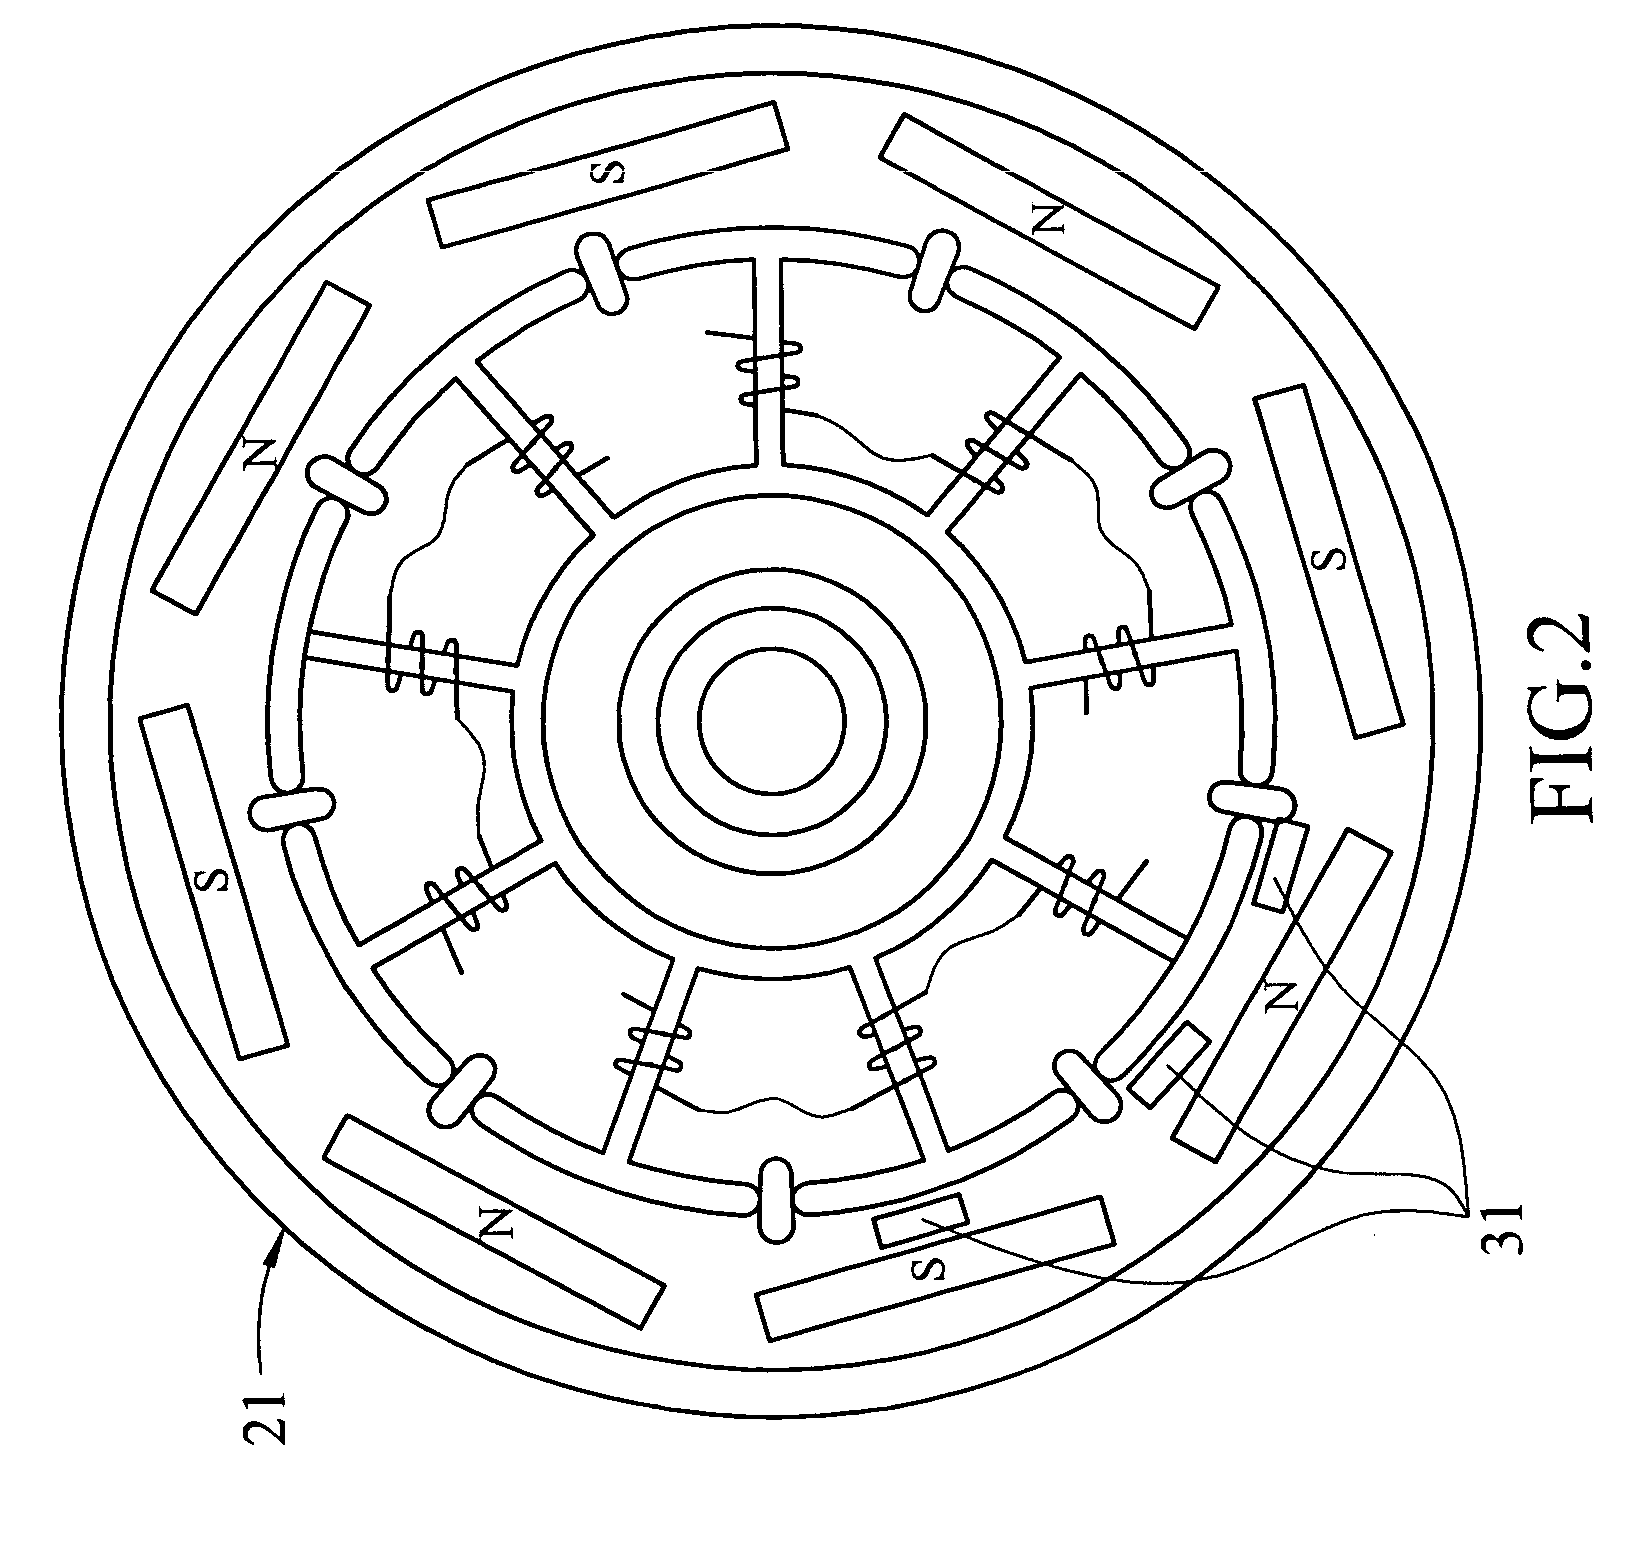 Diagram Of Coil In A Fan